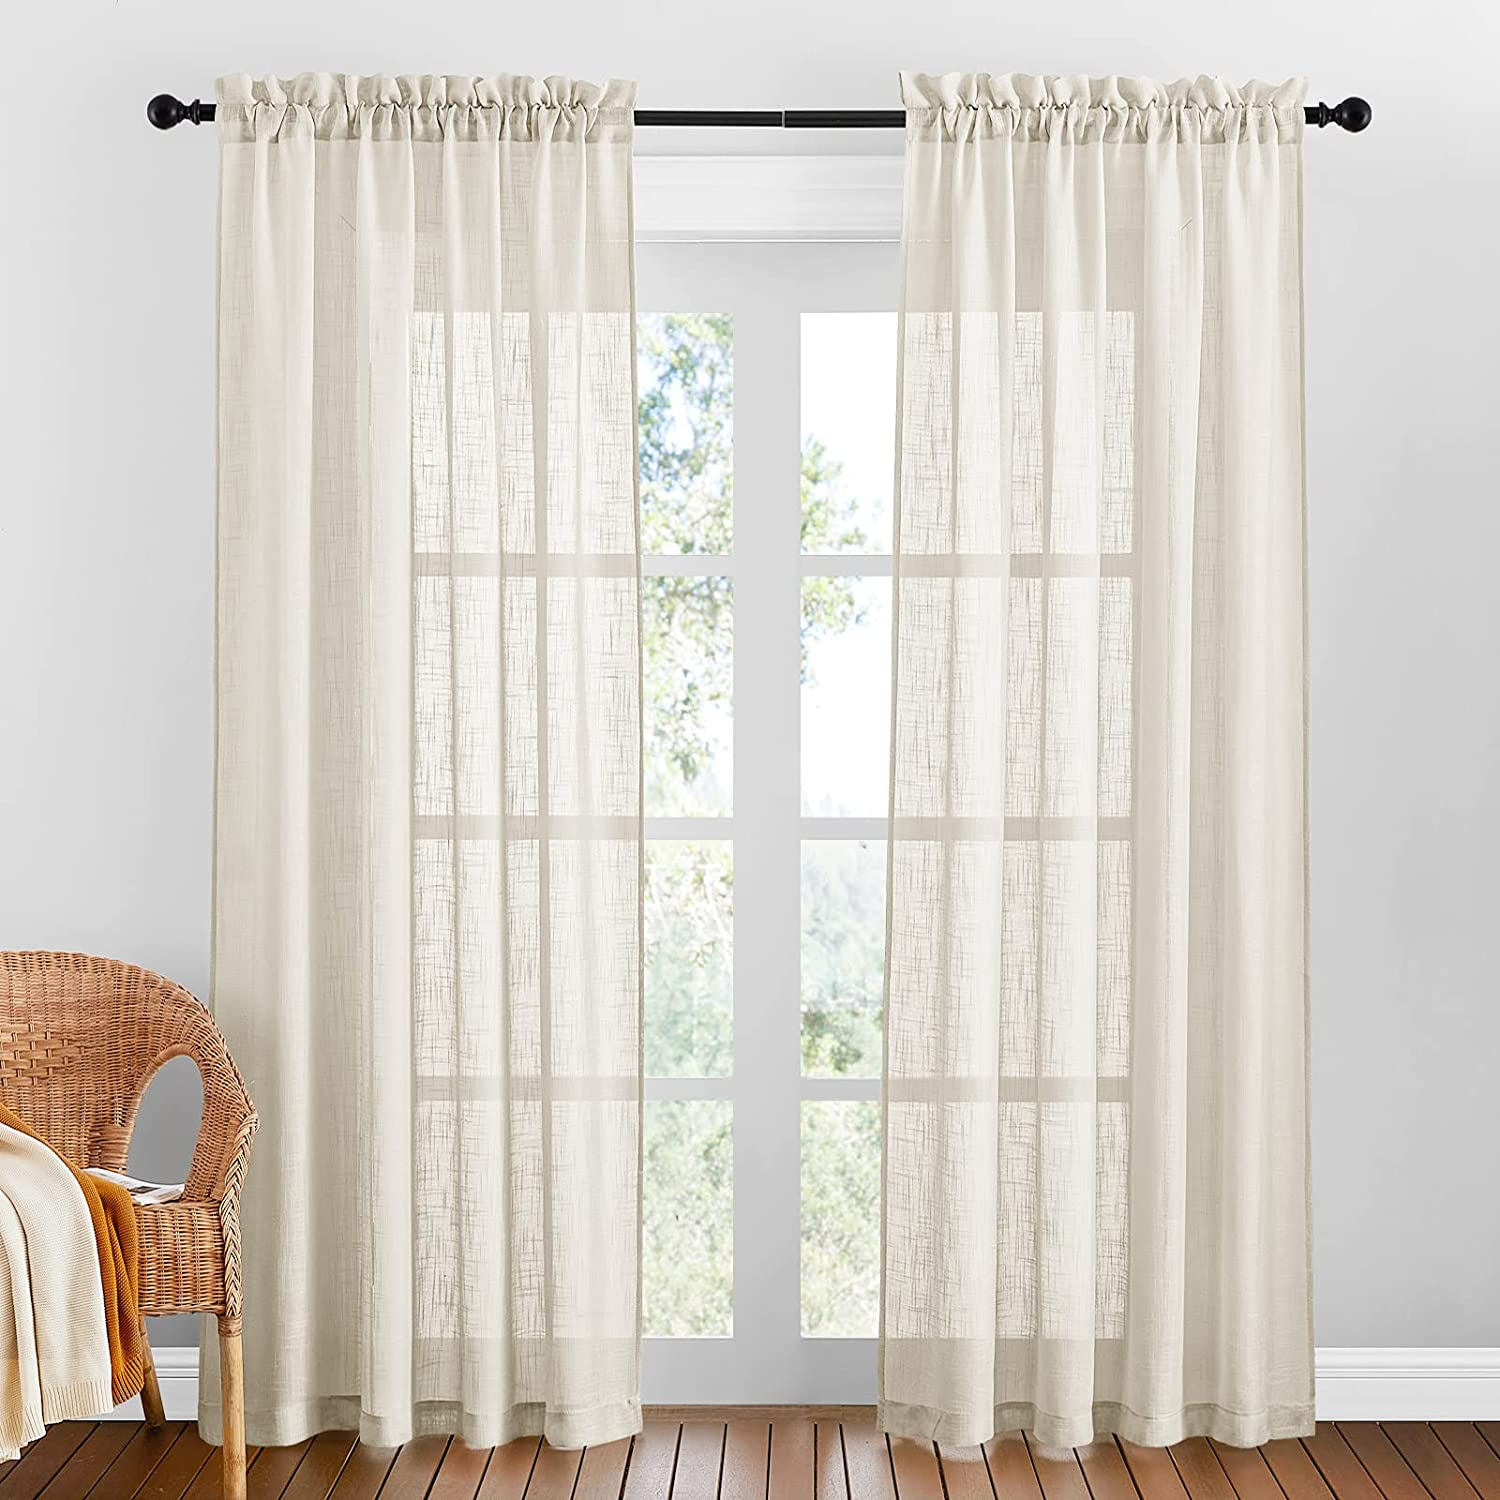 """PONY DANCE Voile Curtains for Bedroom - Thick Faux Linen Window Sheers Slot Top Semi Transparent Sheer Panels for Living Room, Pack-2, 52 inch Wide x 84 inch Long, Beige Cream 2x W52"""" X L84"""" Slot Top 